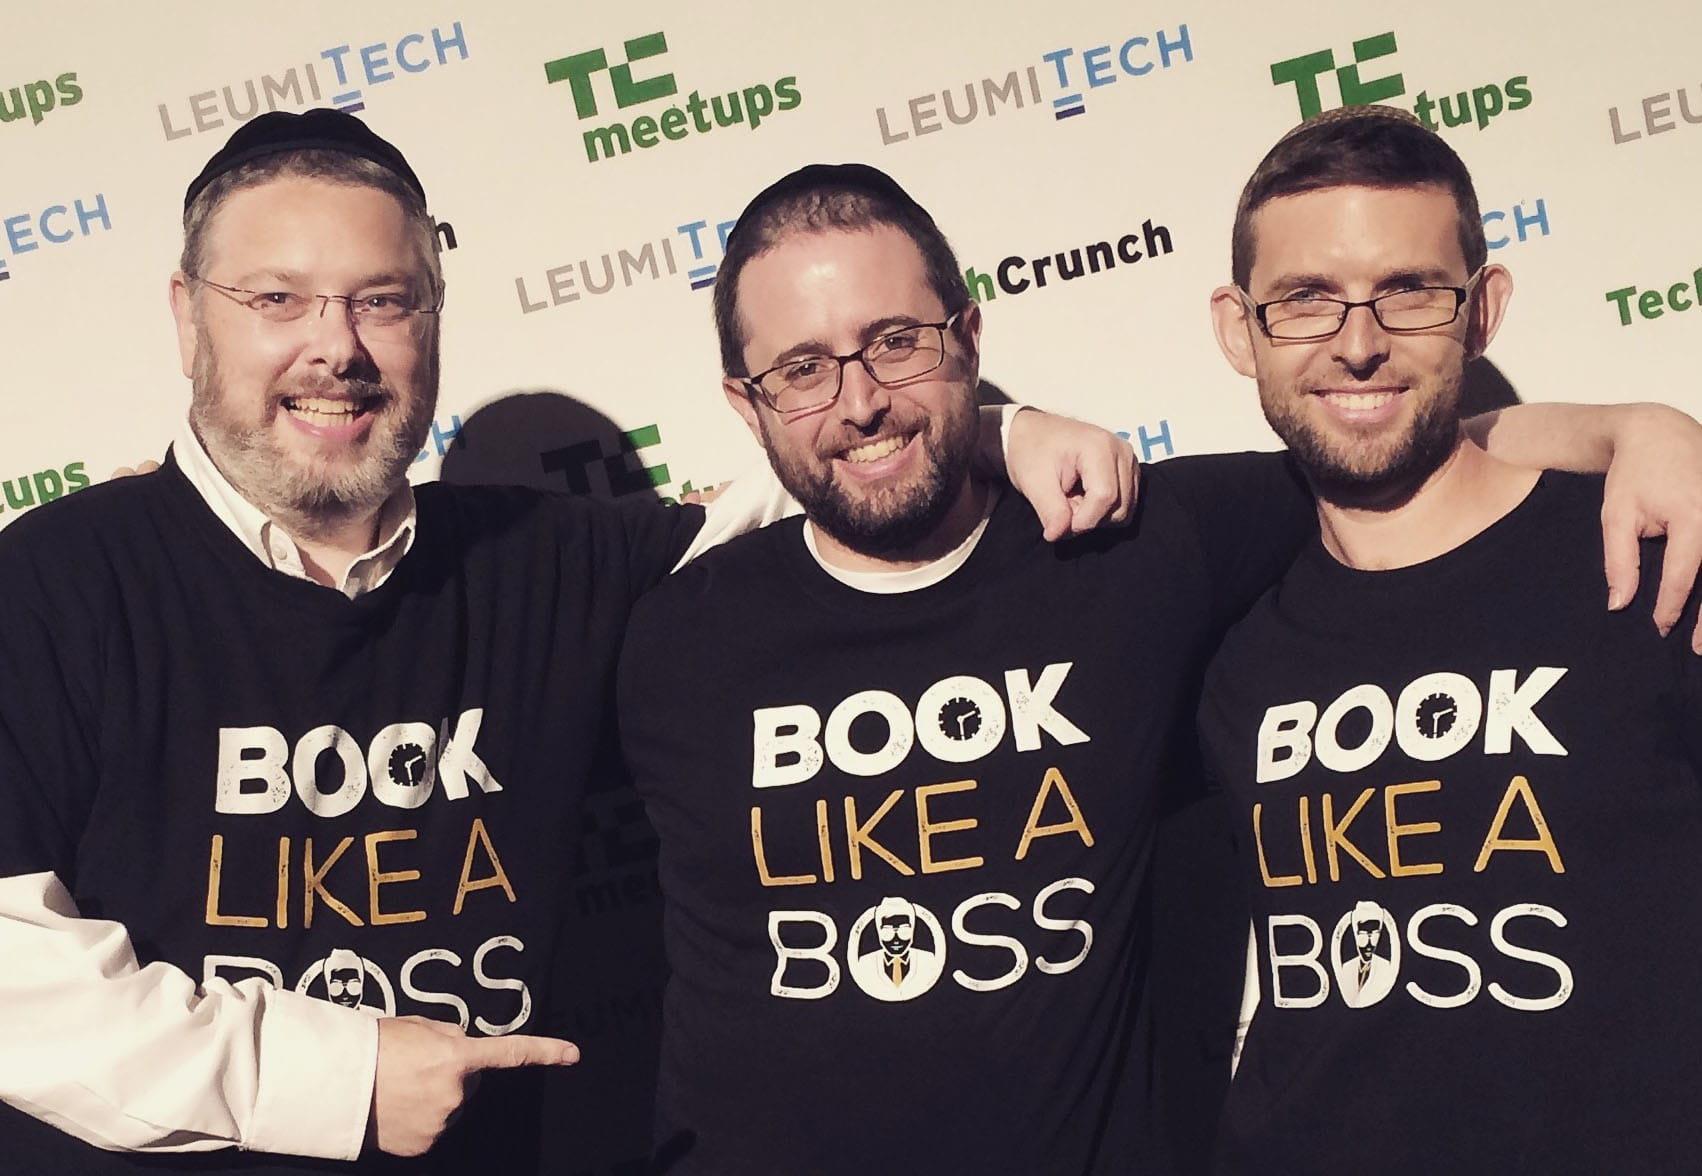 booklikeaboss techcrunch